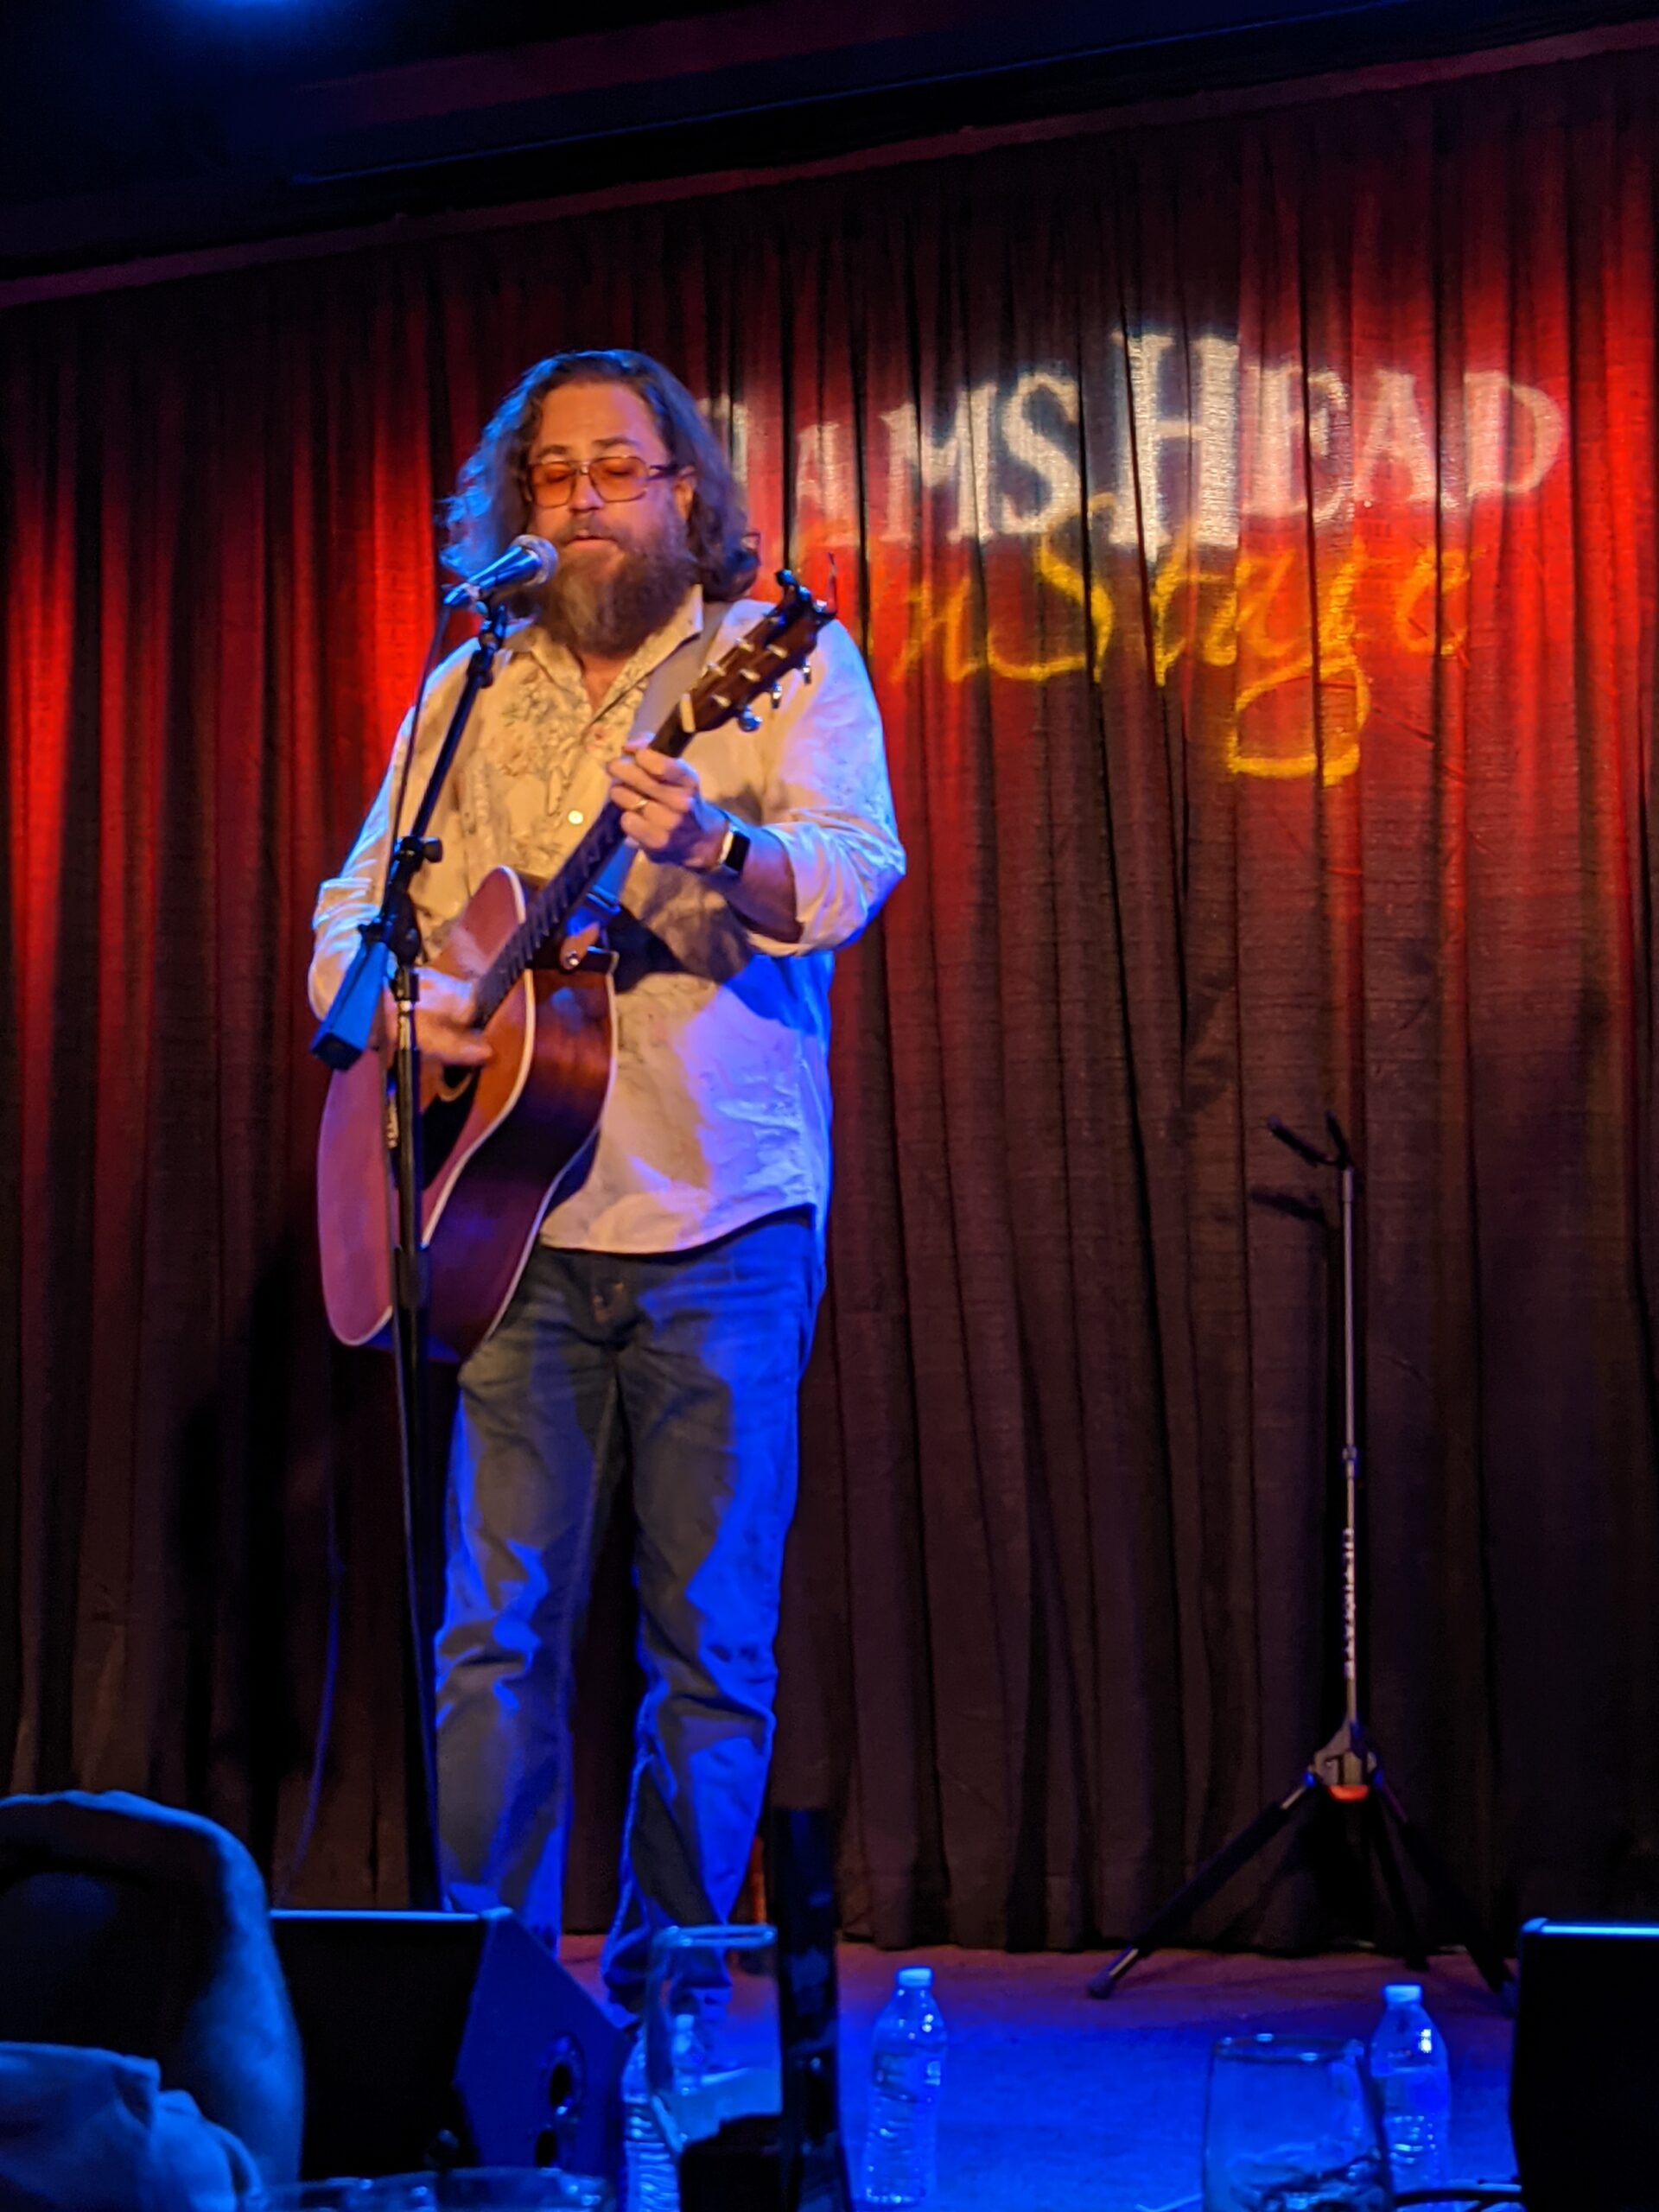 Jonathan Coulton on stage at at Ram's Head in Annapolis